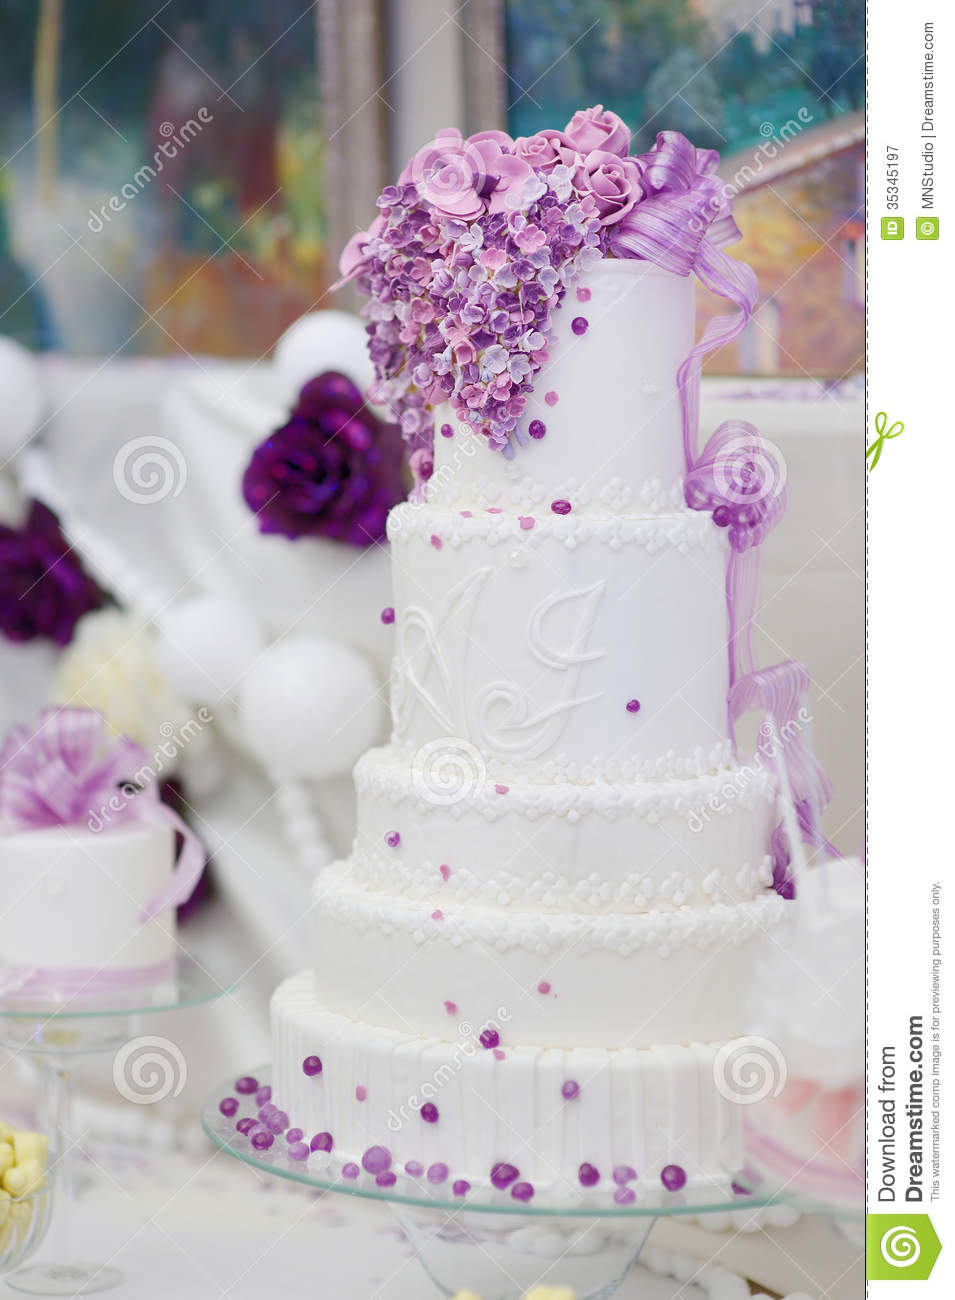 White Wedding Cake Decorated With Purple Flowers Stock Image - Image ...